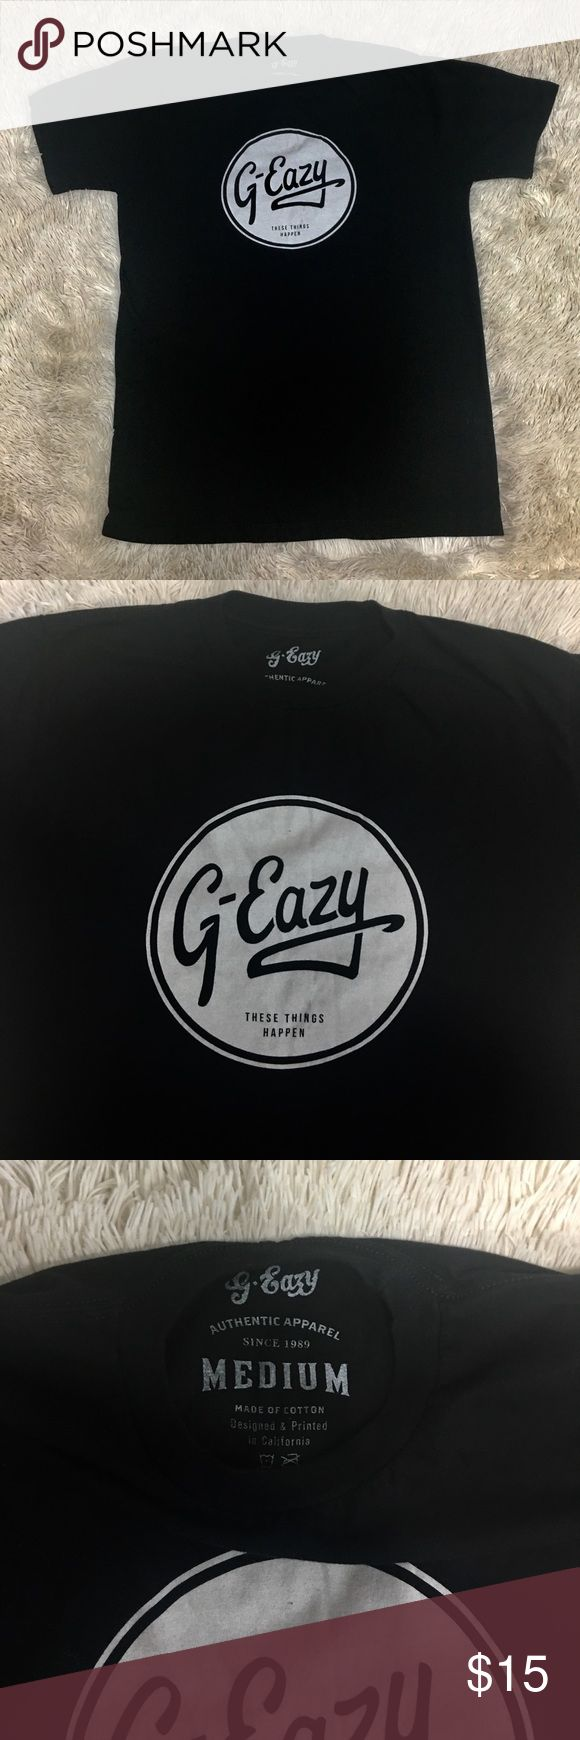 G-Eazy Concert Tee Like new! Black G-Eazy Concert T-Shirt. Medium size. Shirts Tees - Short Sleeve